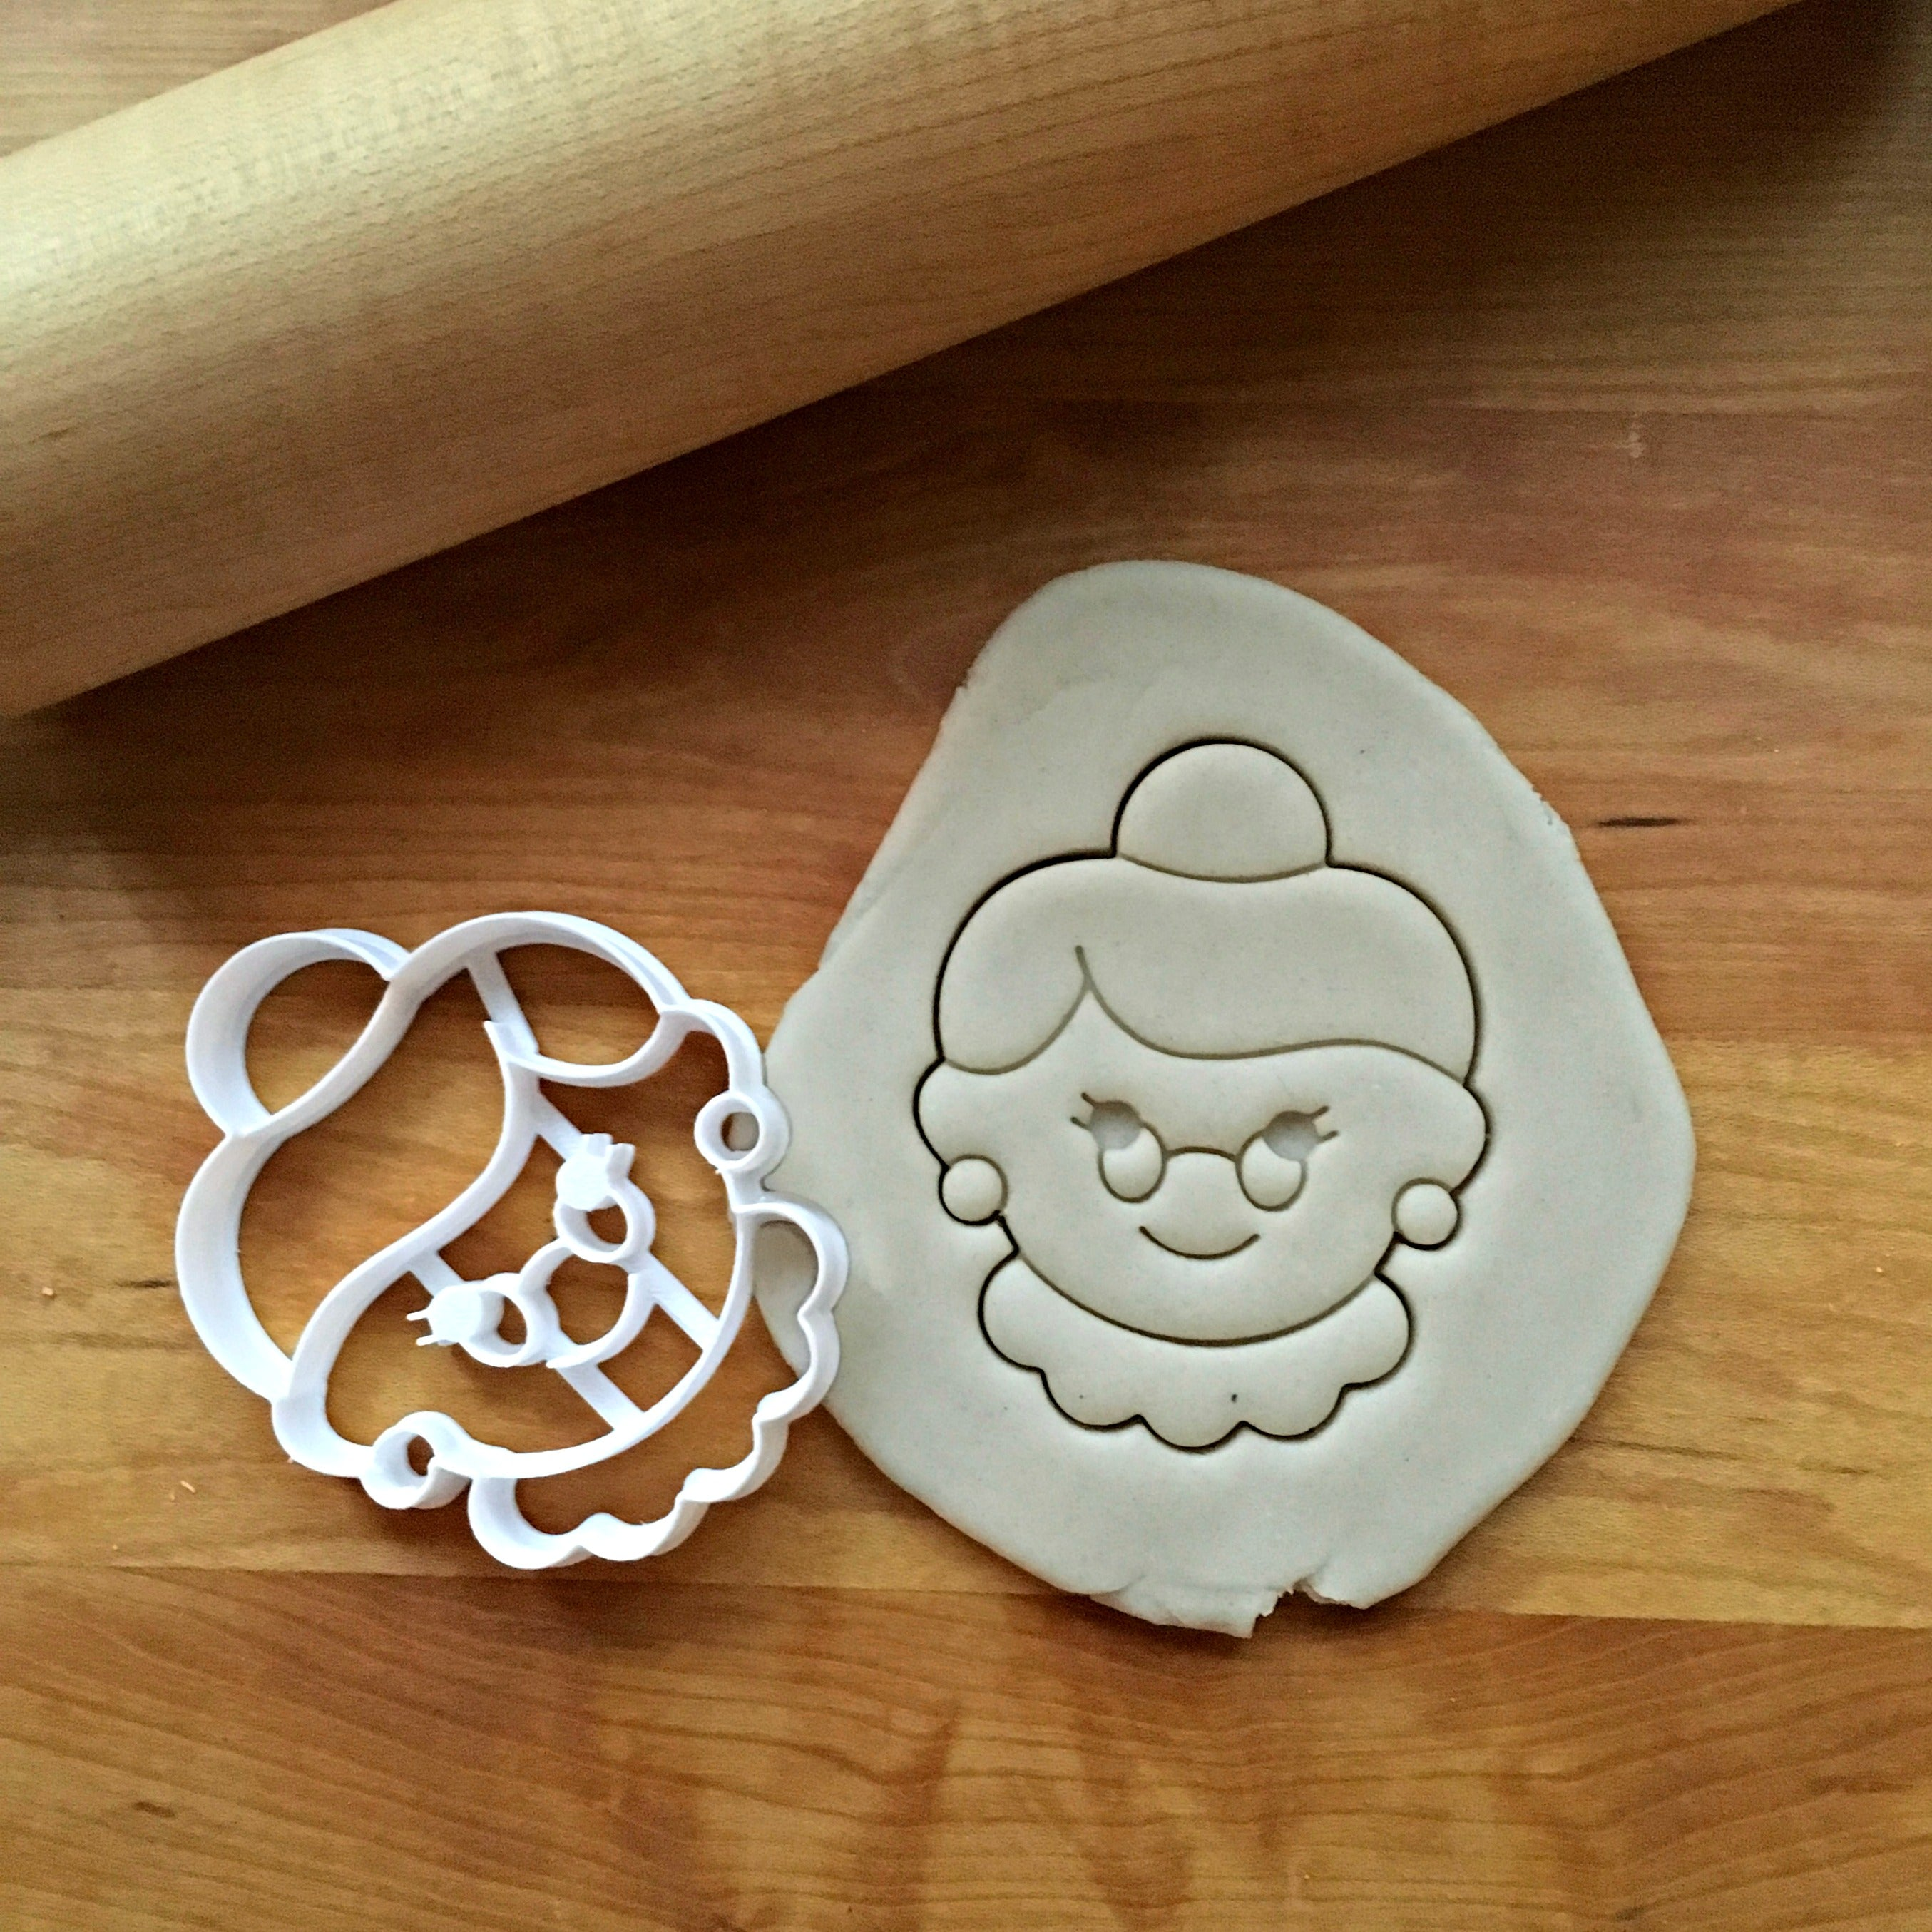 Mrs. Claus Cookie Cutter